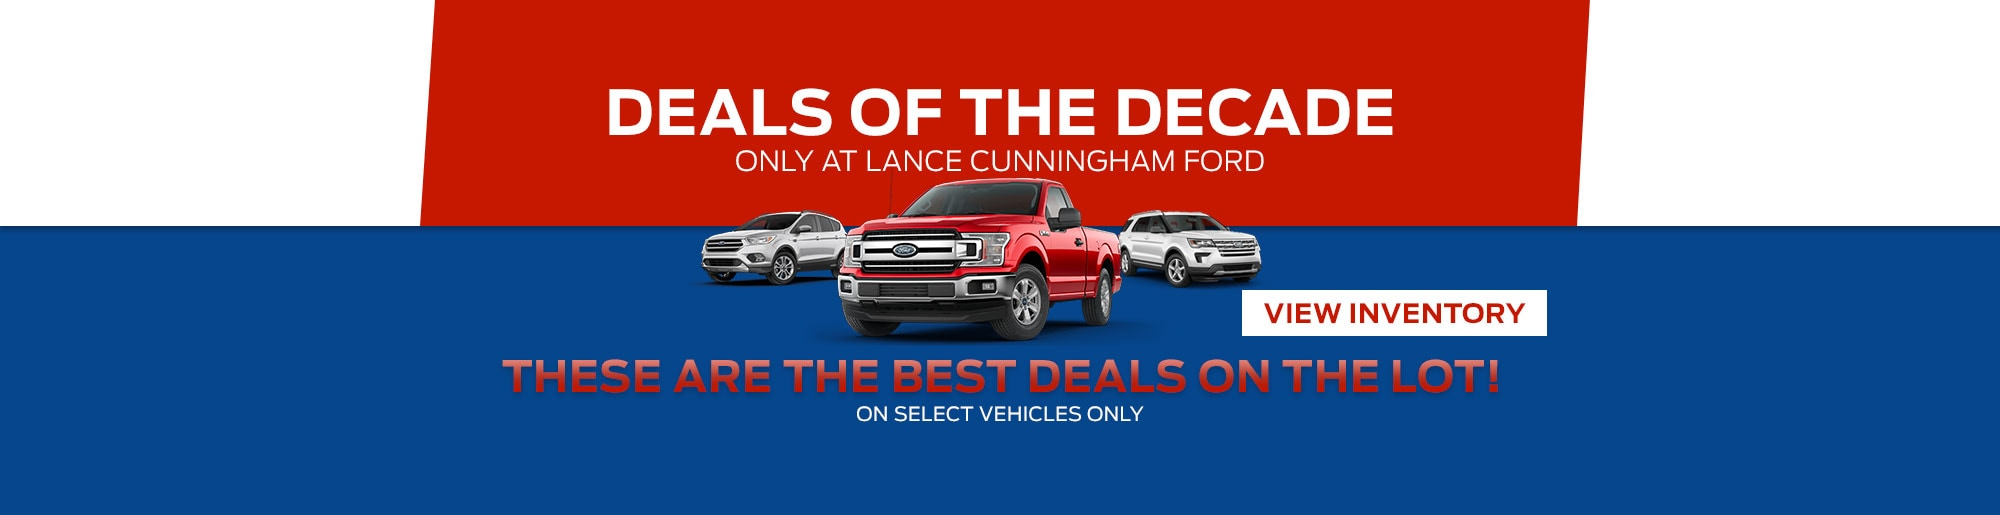 New 209-2020 Ford & Used Car Dealer & Ford Service in Knoxville, TN